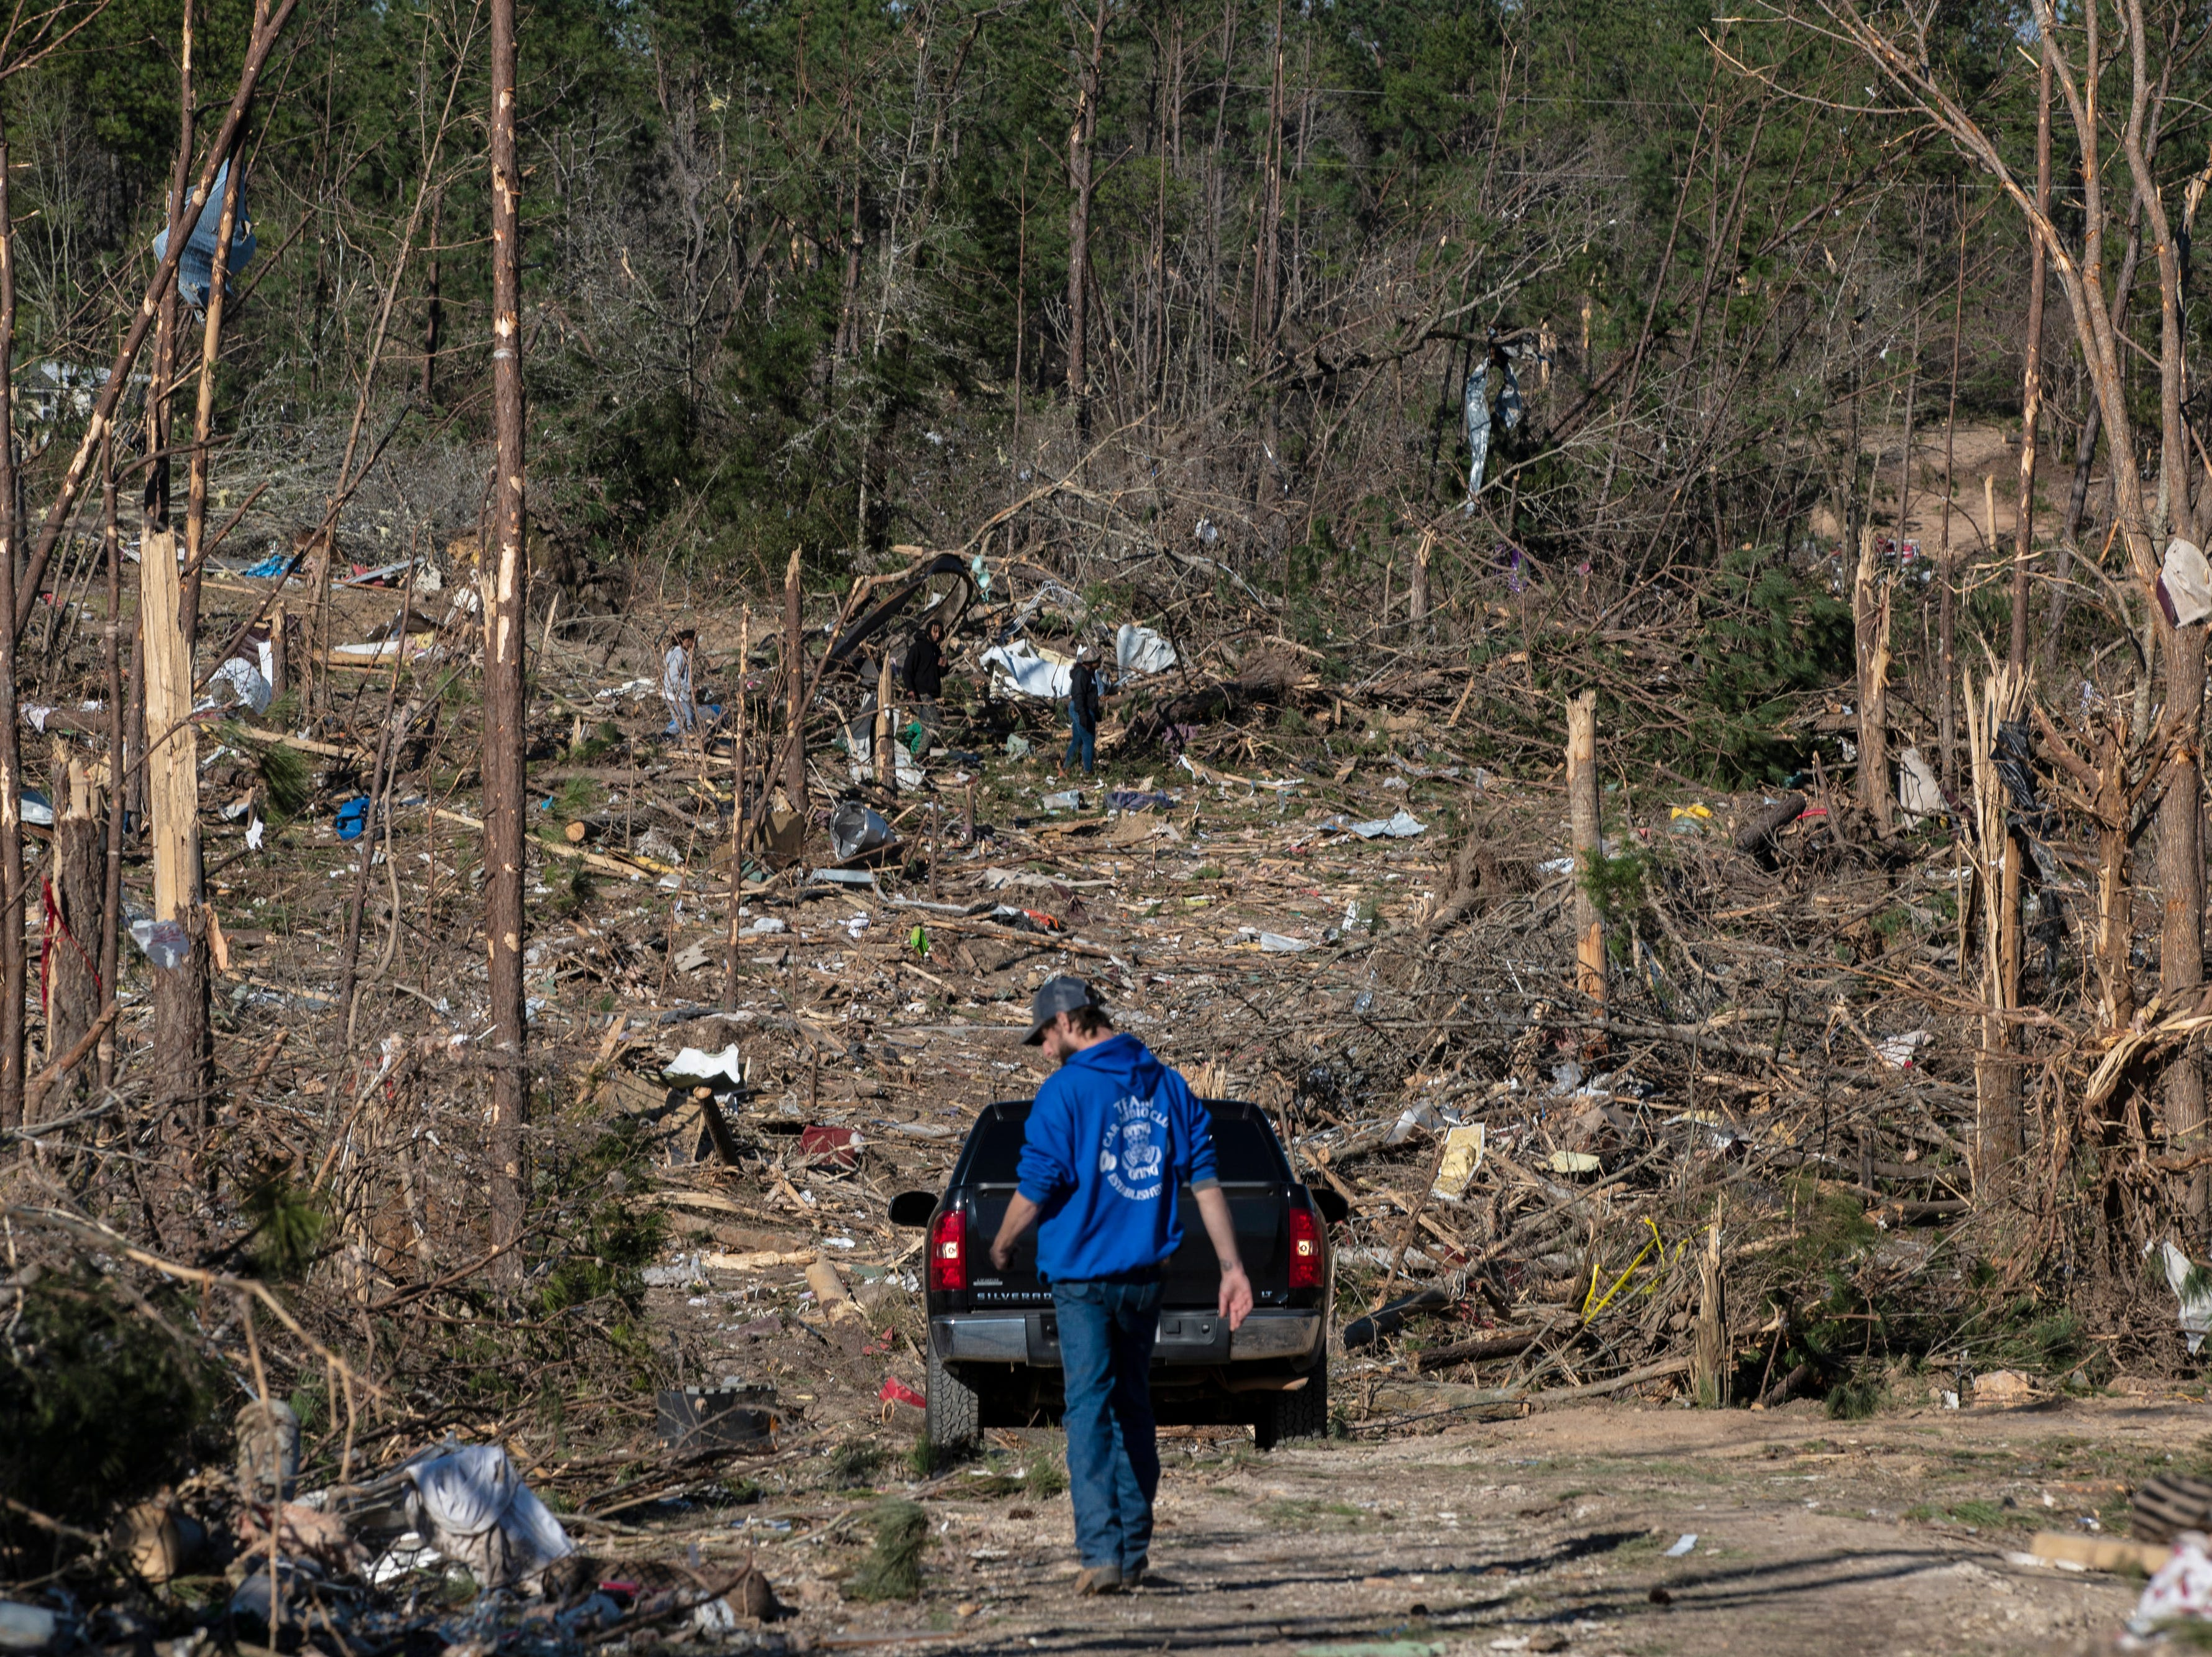 Residents look for items in the debris left in Beauregard, Ala. on March 6, 2019.